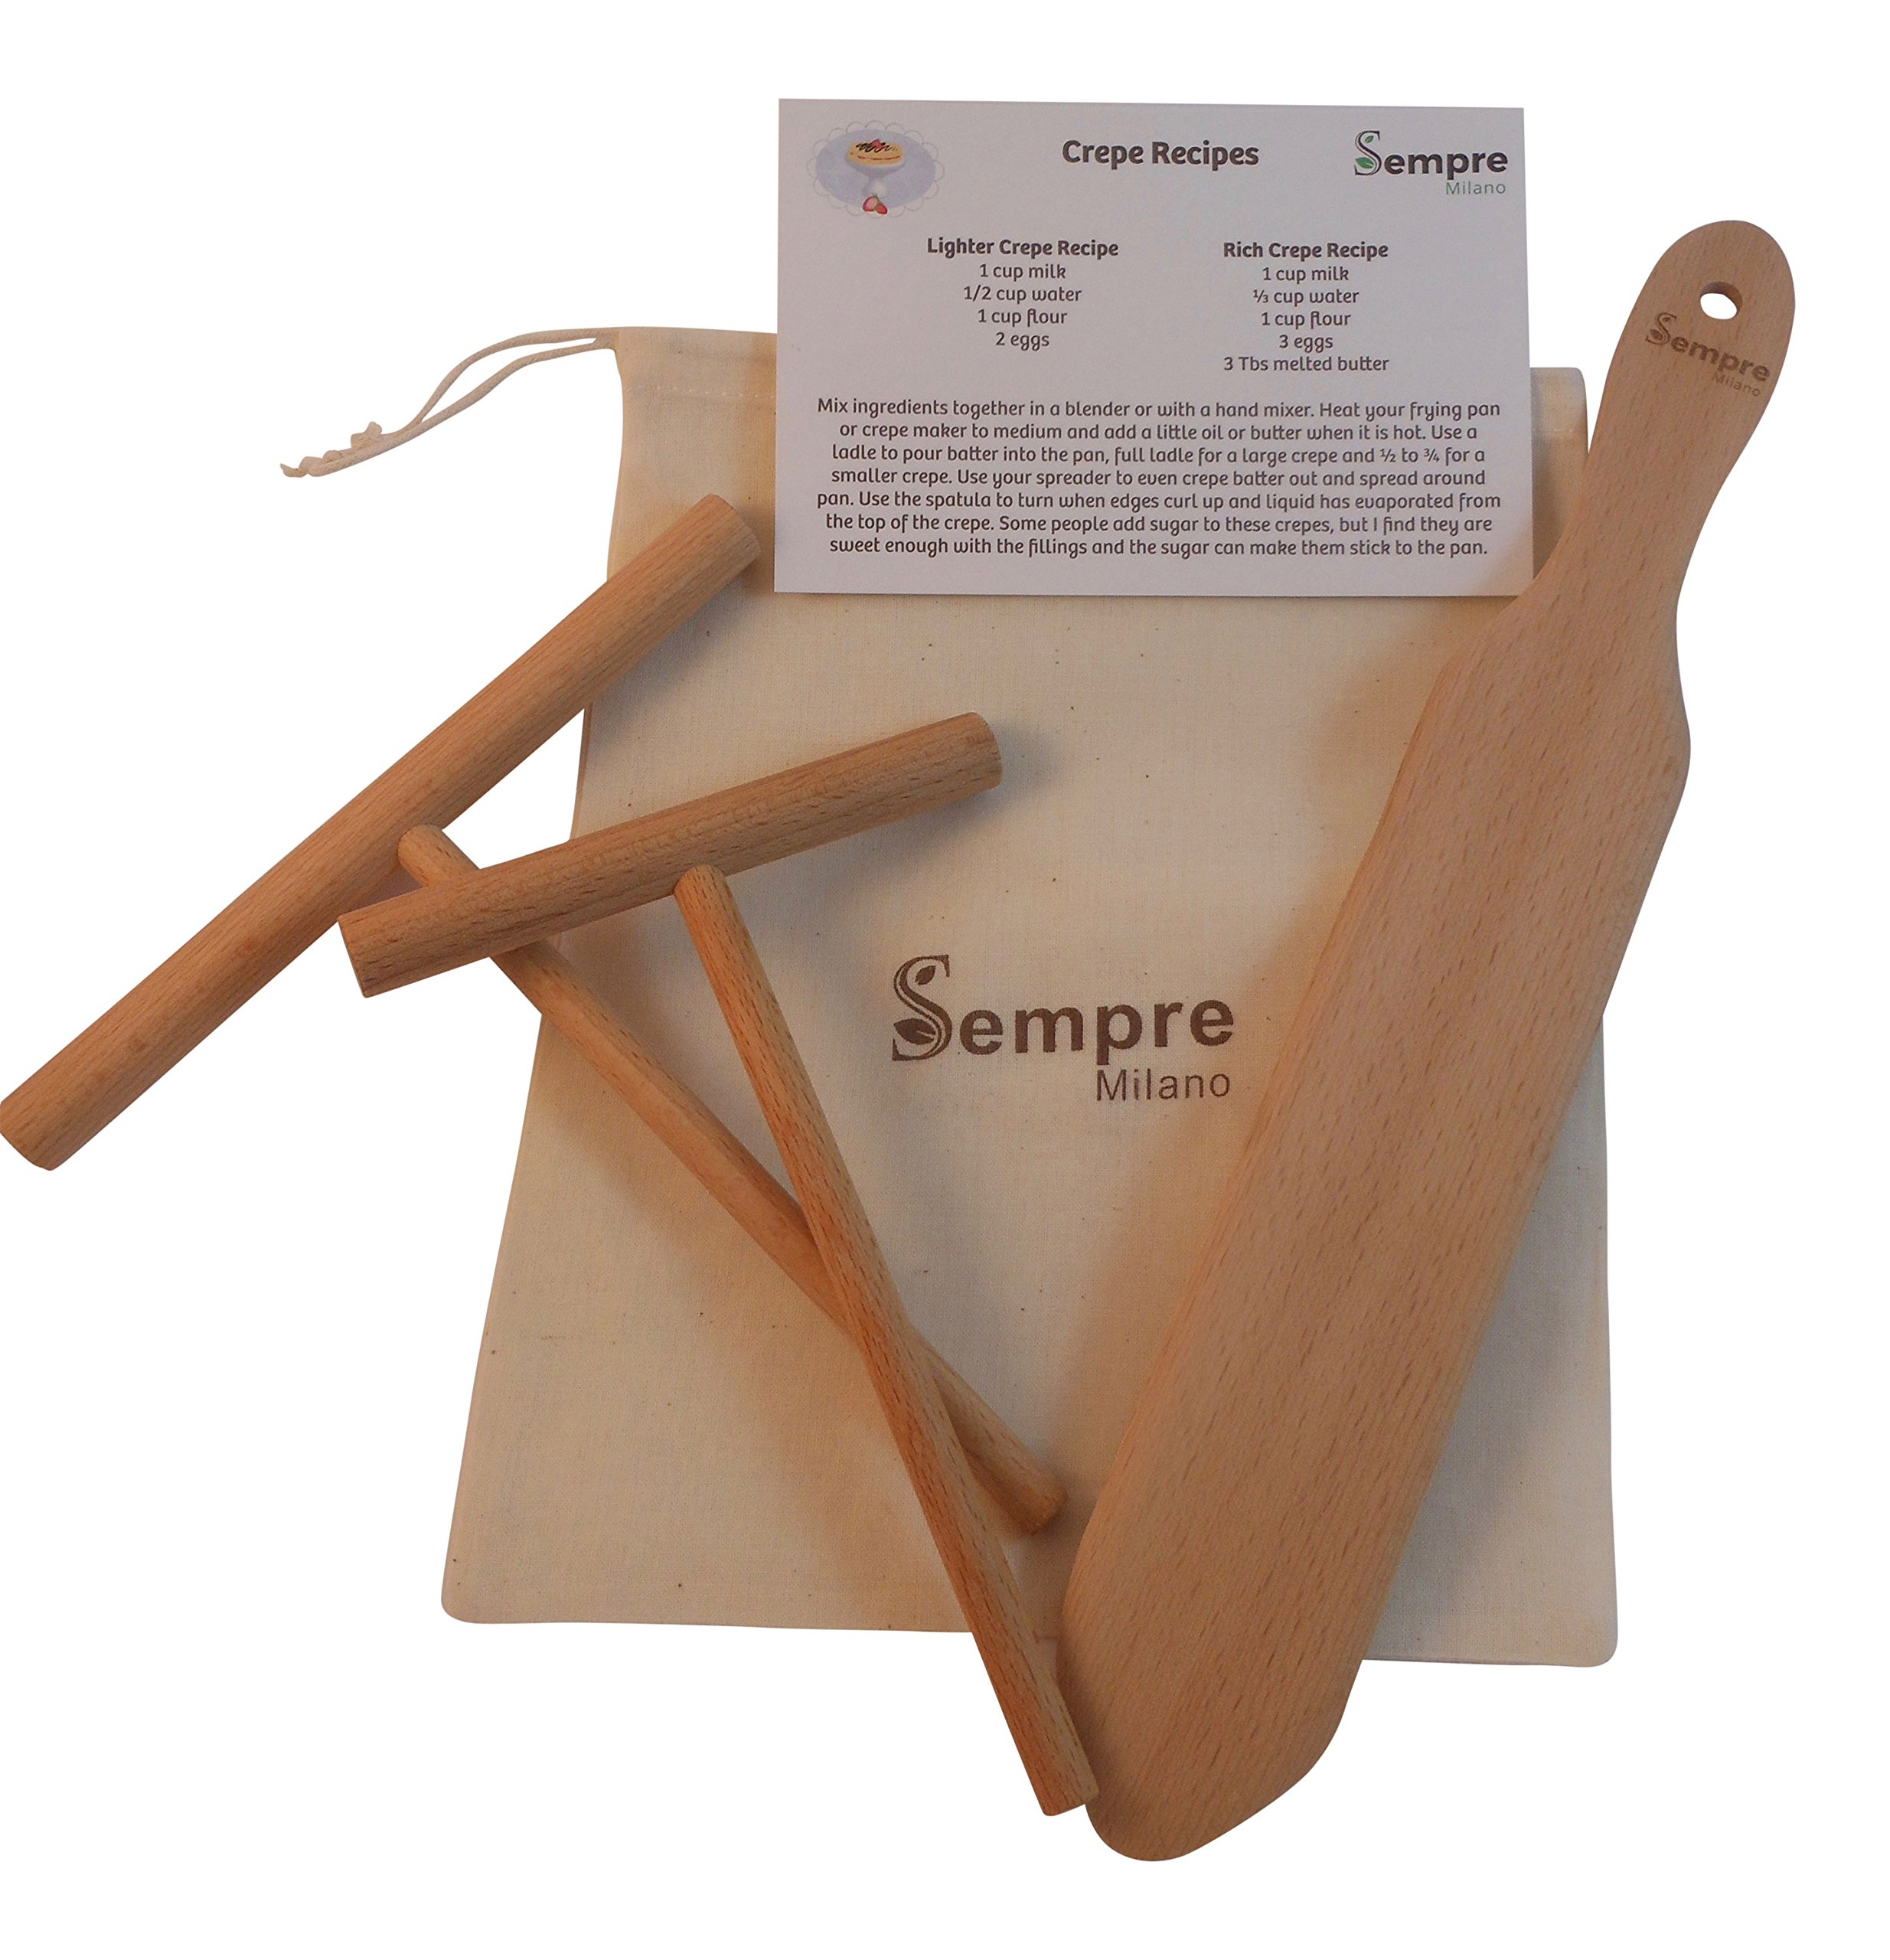 The ORIGINAL 3 Piece Crepe Spreader and Spatula Set (5 and 7 inch Spreaders and 13 inch Spatula) with Storage Bag and Recipe Card in Natural Beechwood By Sempre